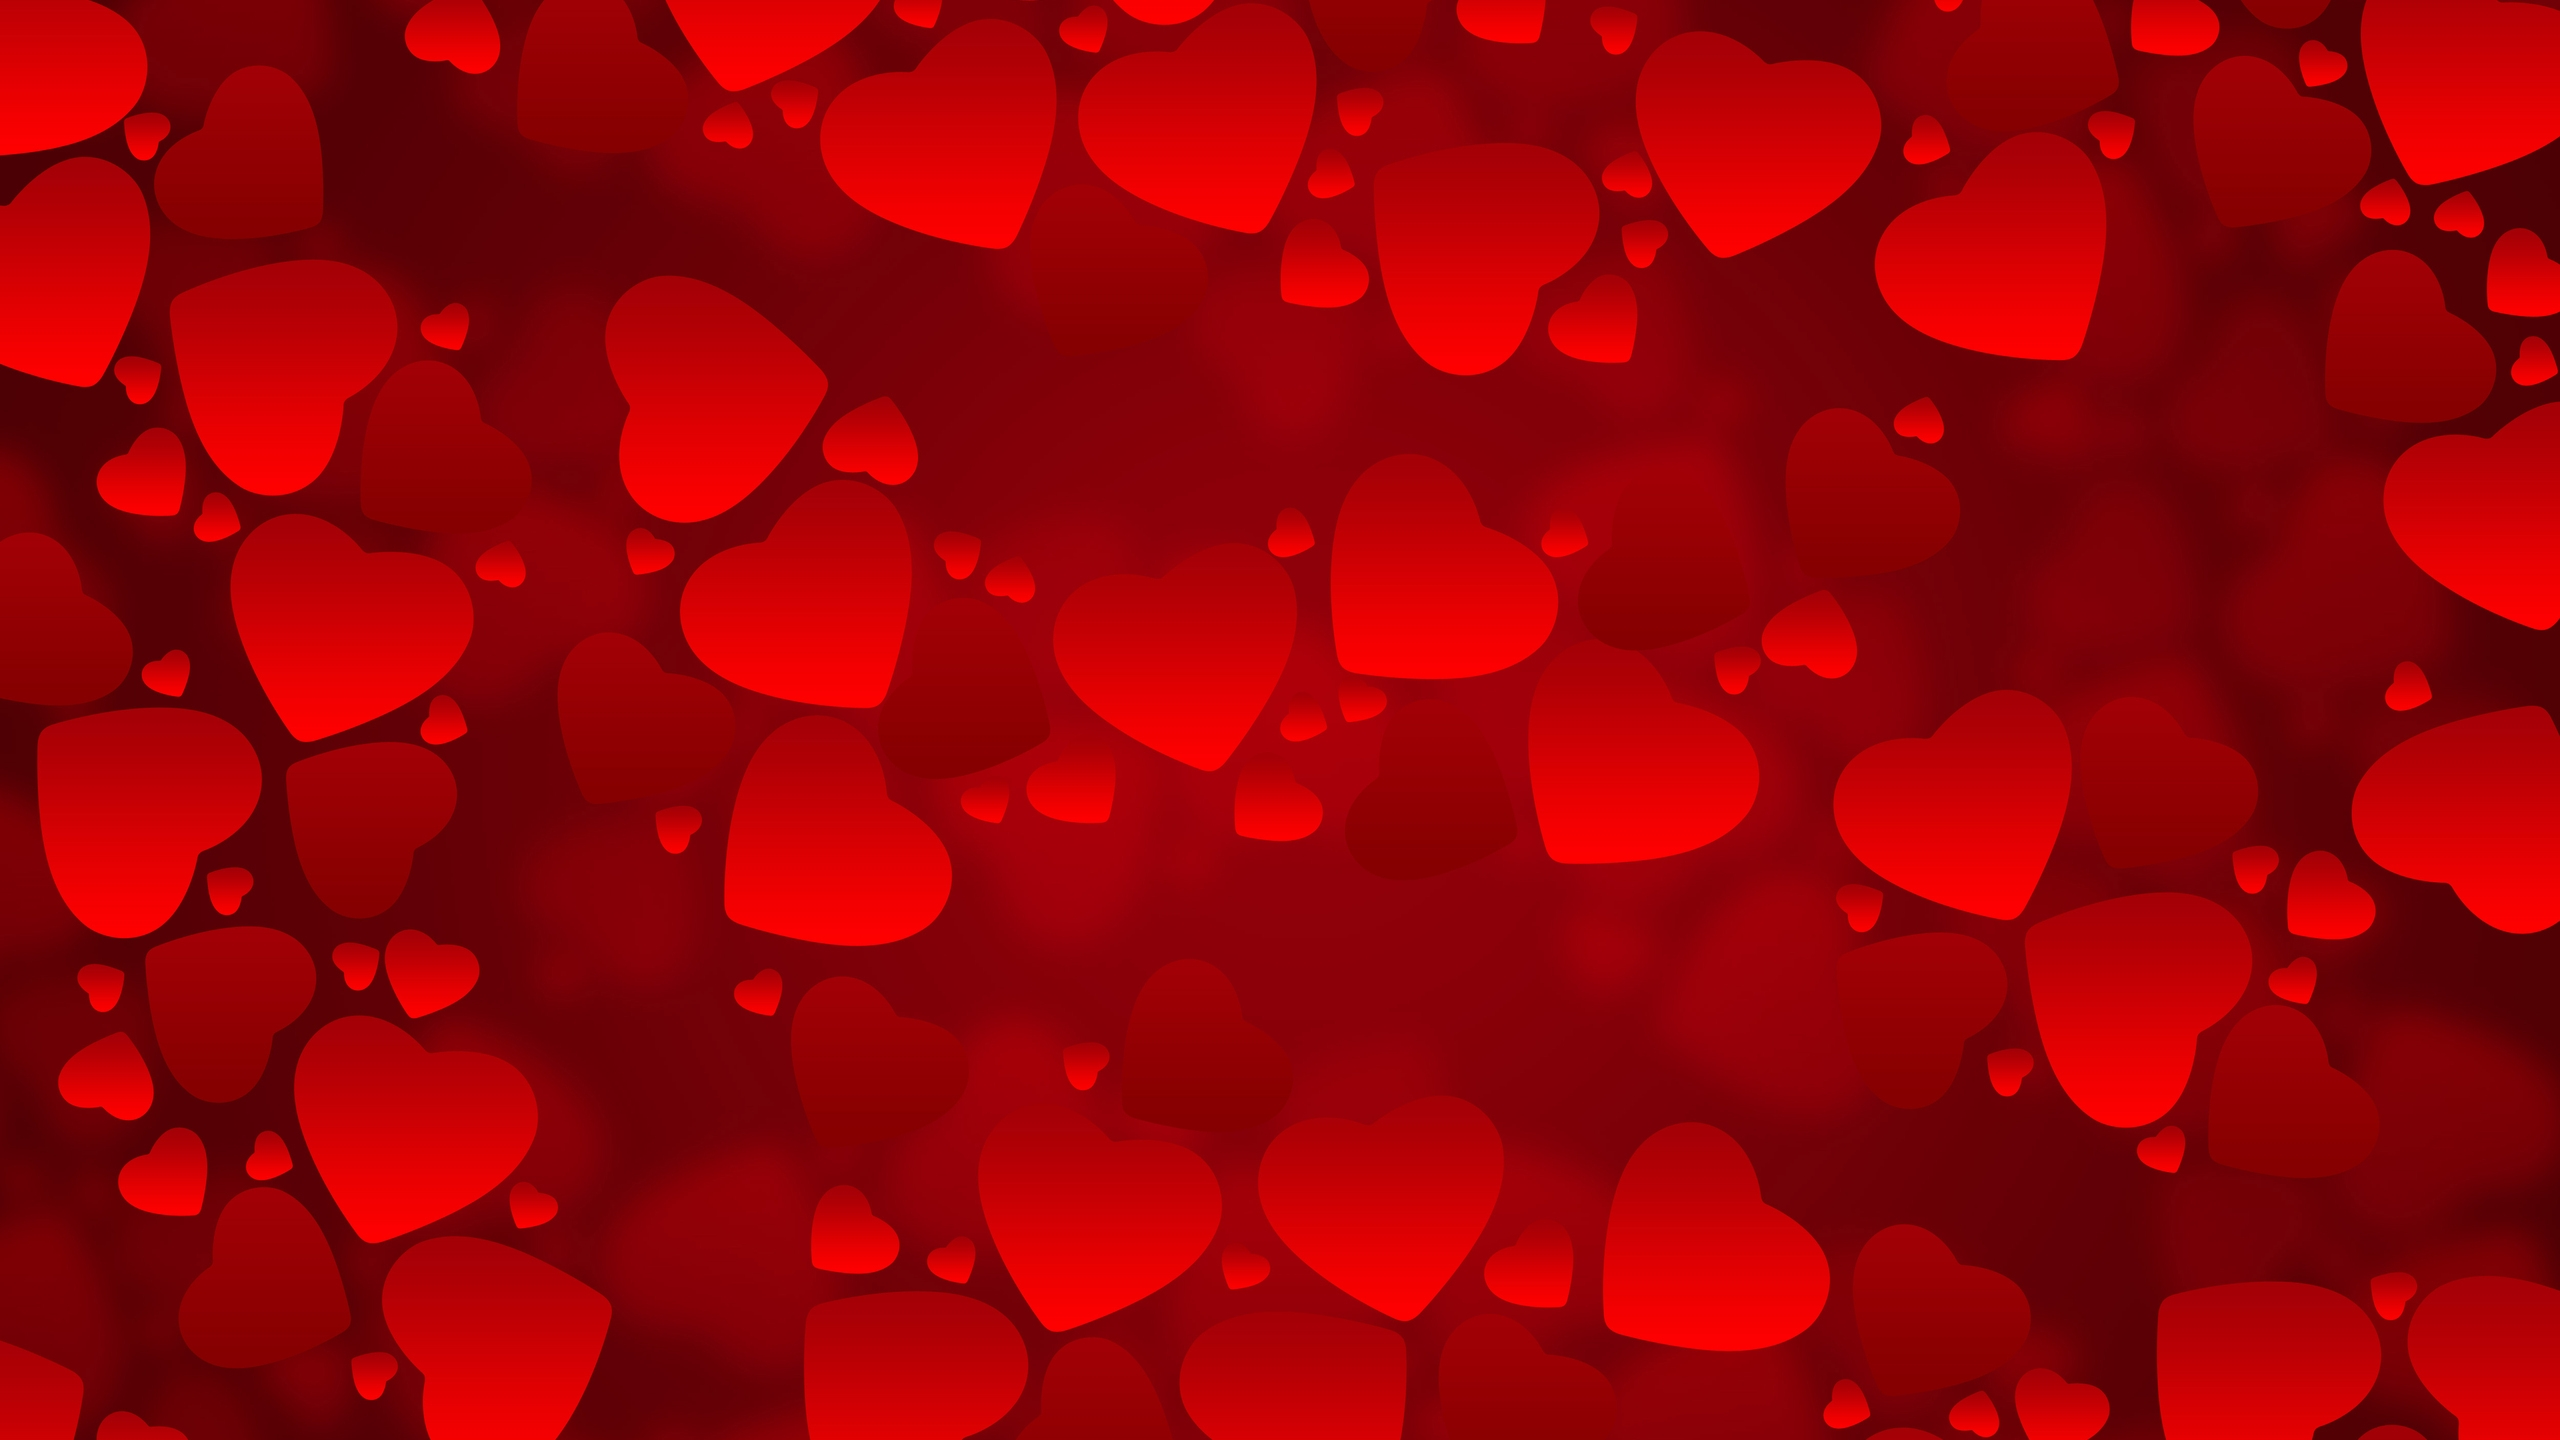 Valentines Day Background for 2560x1440 HDTV resolution